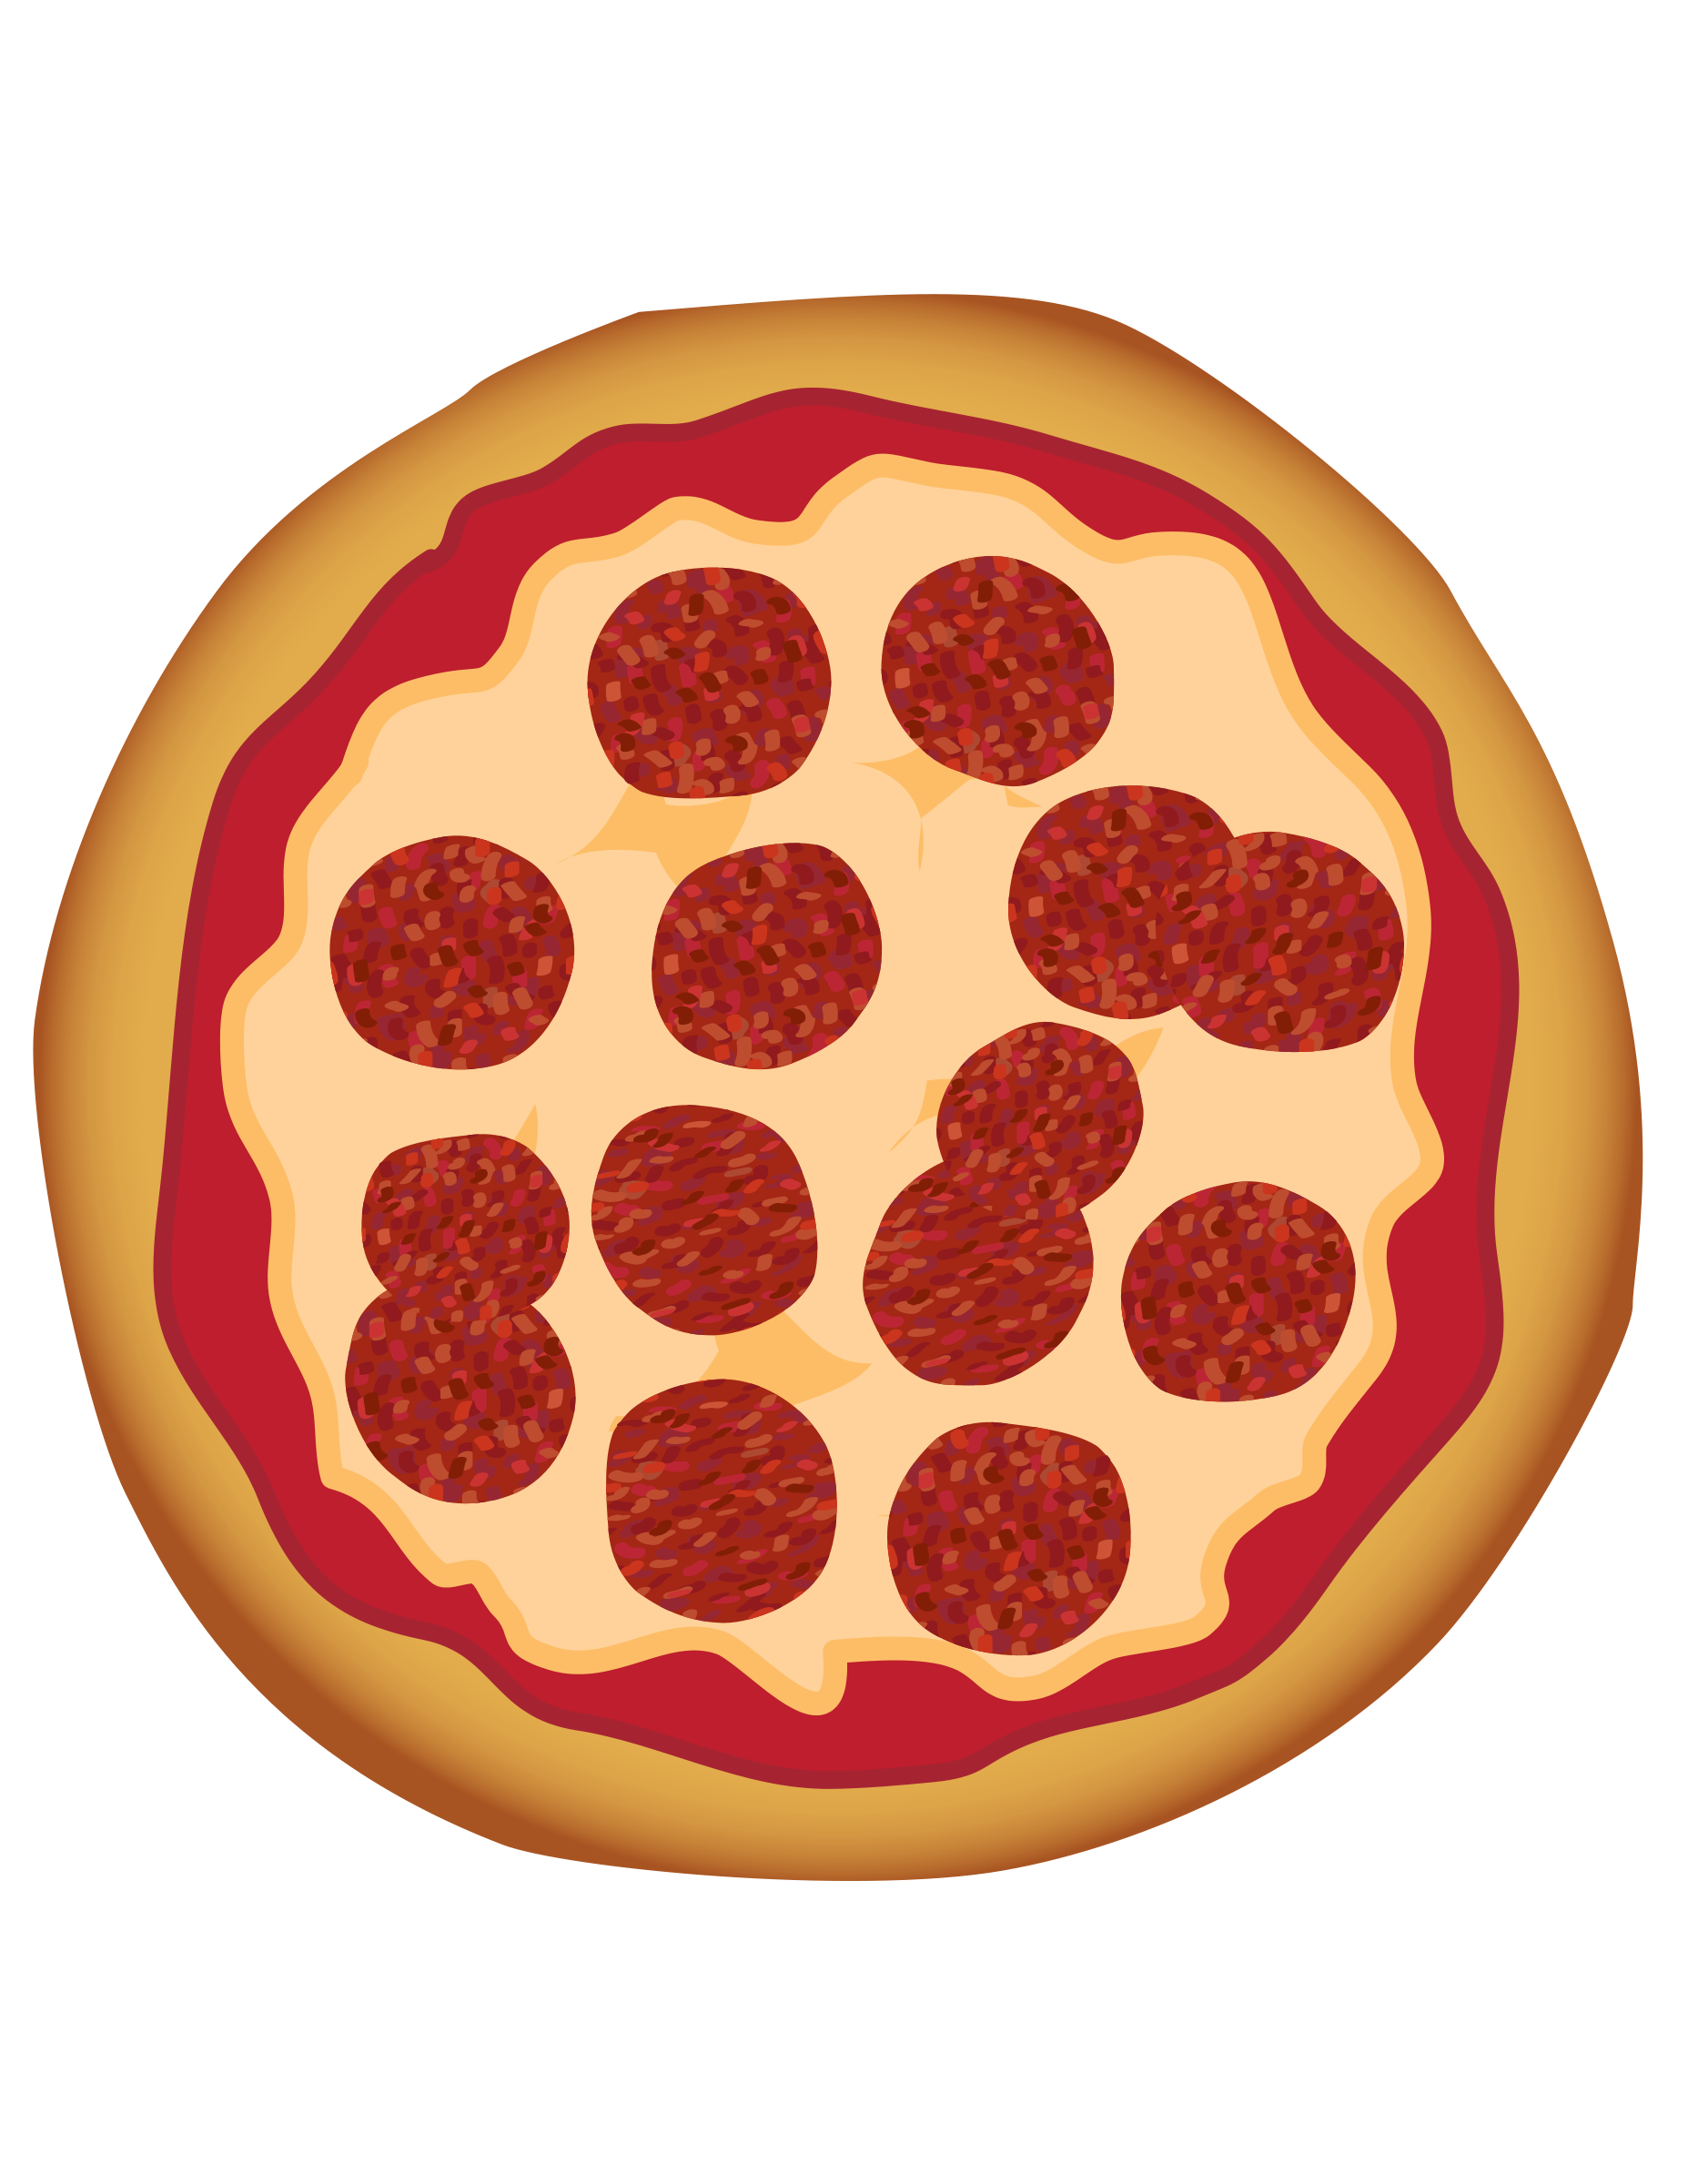 Fraction drawing pizza. Free pictures of a